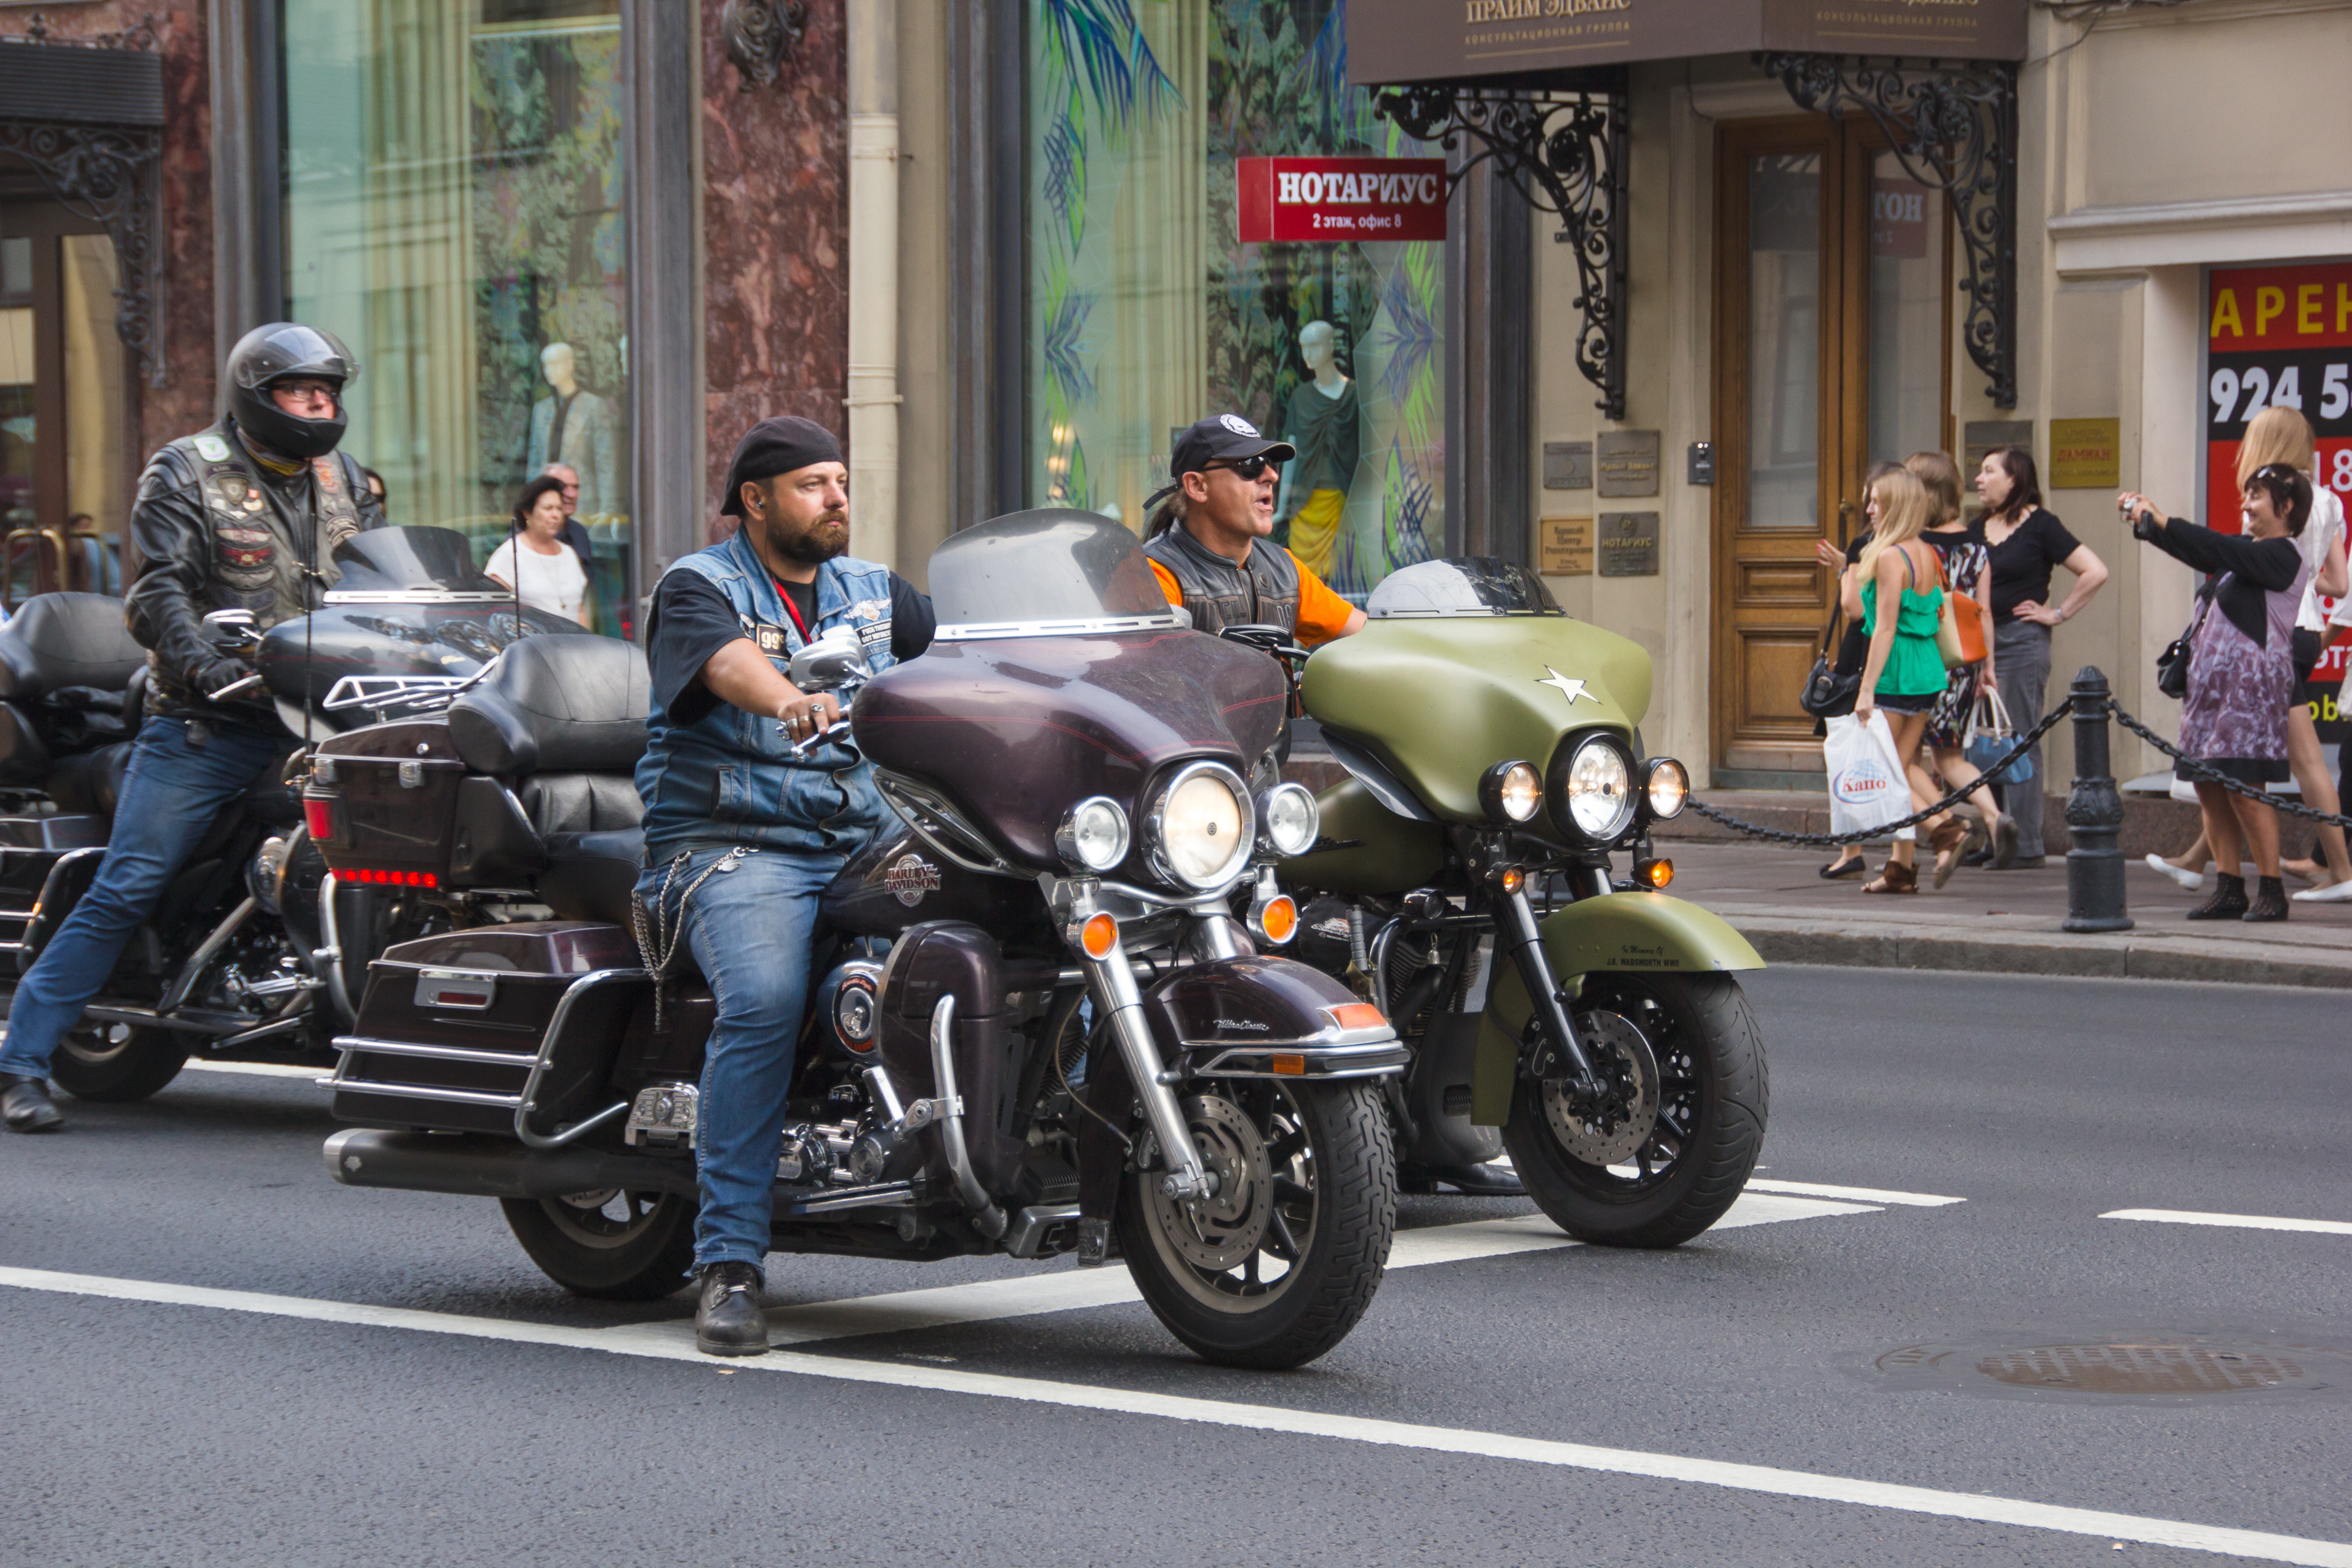 motorcyclists, Adult, Motor, Transportation, Transport, HQ Photo